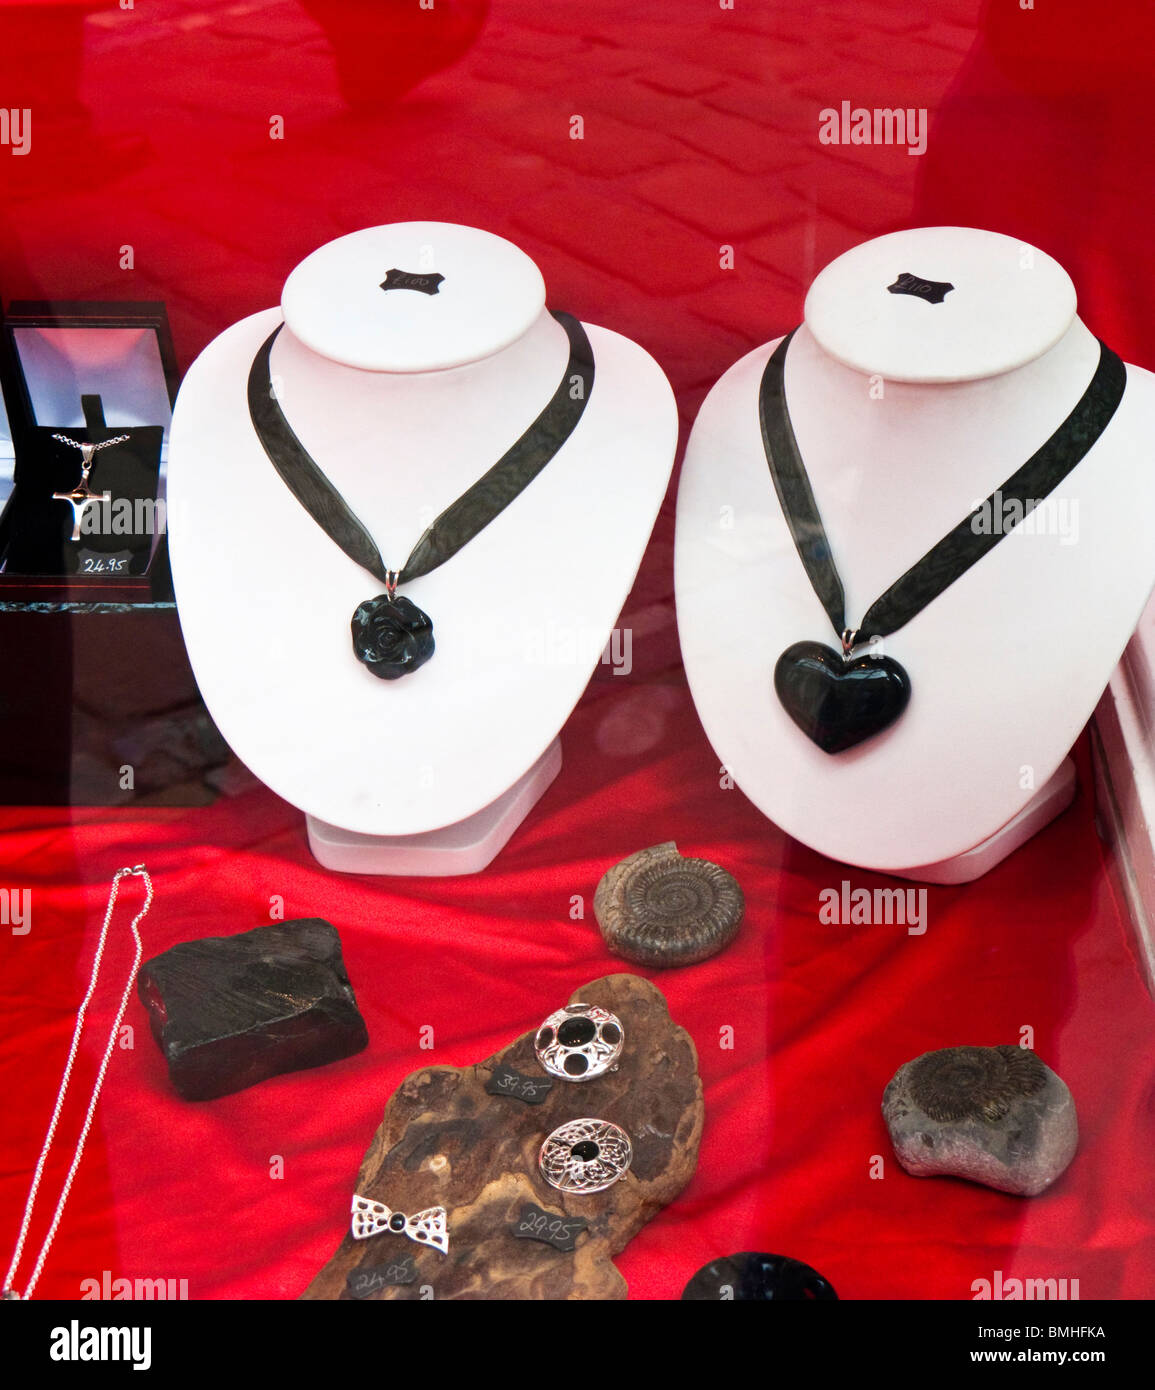 Window display of Whitby Jet jewellery, Whitby, North Yorkshire, England UK - Stock Image